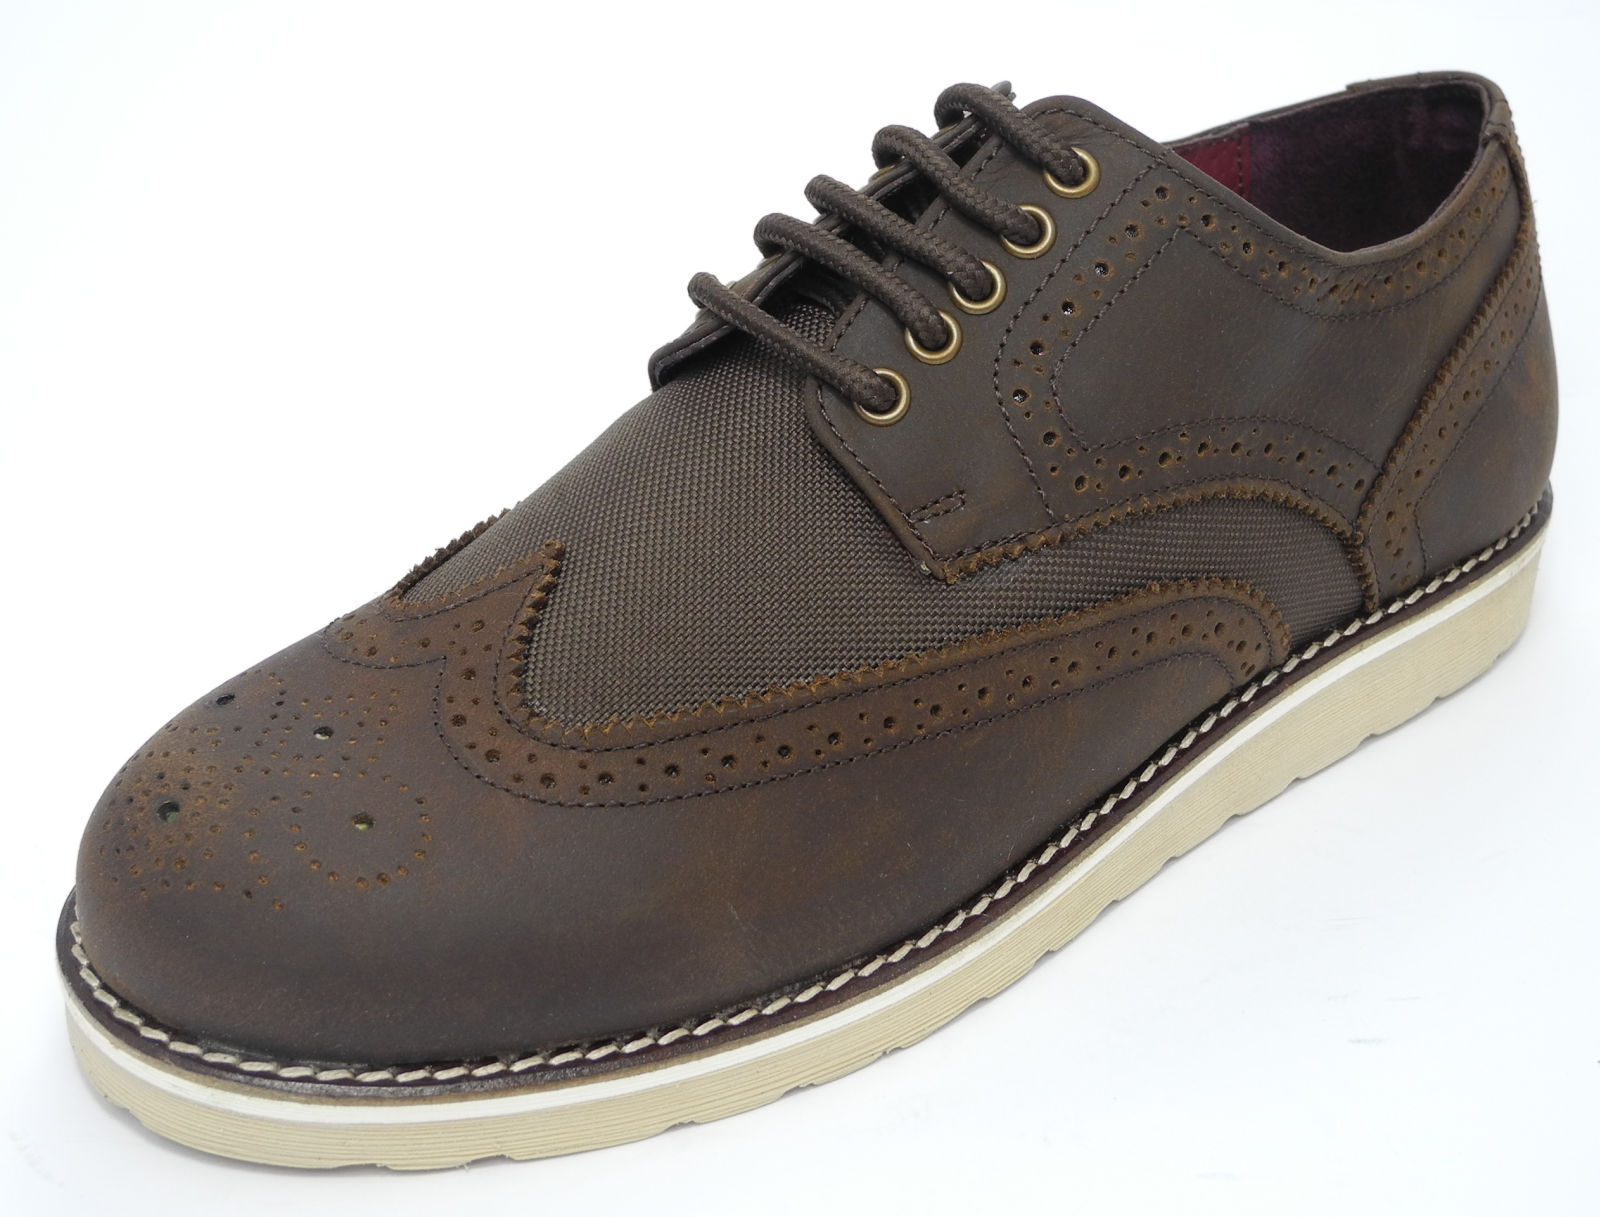 Mens Brown Real Leather Flat Sole Brogues Shoes Size 7 8 9 10 11 | EBay